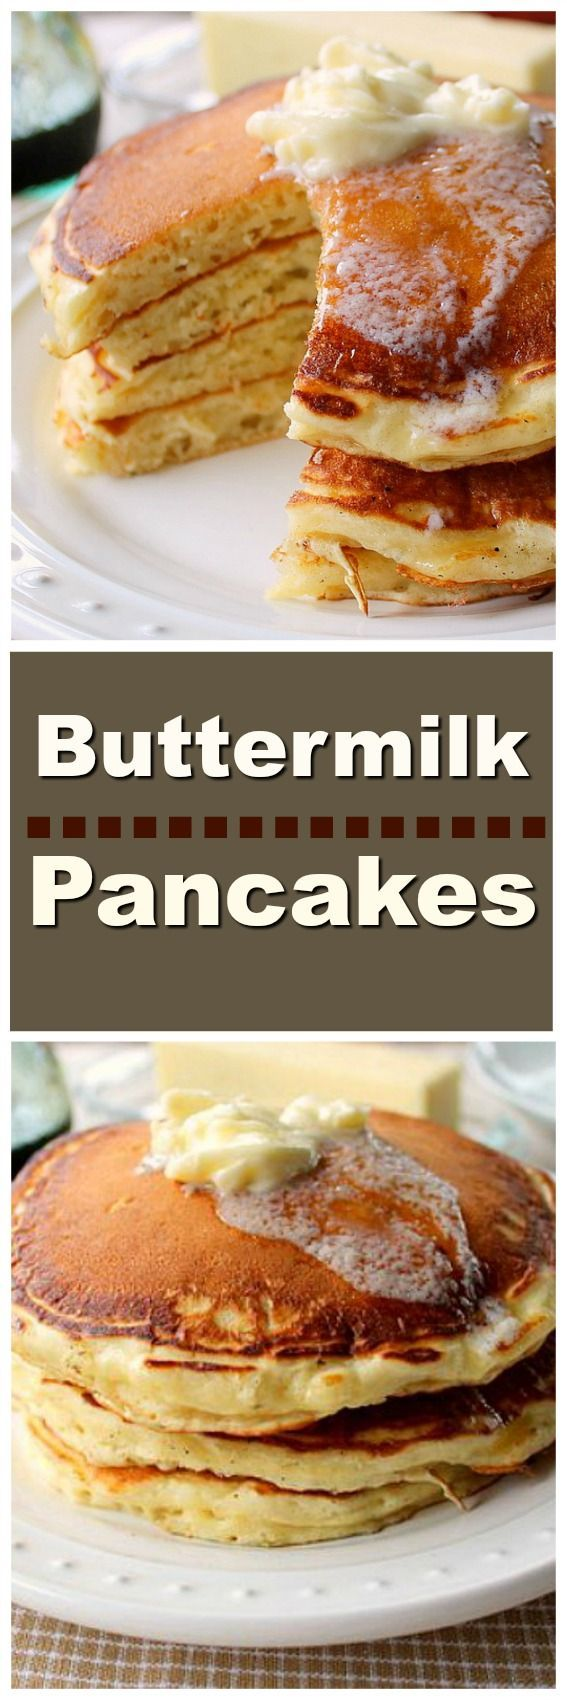 Buttermilk Pancakes Ever The Best Buttermilk Pancakes EVER! Fluffy, tall, soft homemade buttermilk pancakes, does it get any better than this!The Best Buttermilk Pancakes EVER! Fluffy, tall, soft homemade buttermilk pancakes, does it get any better than this!